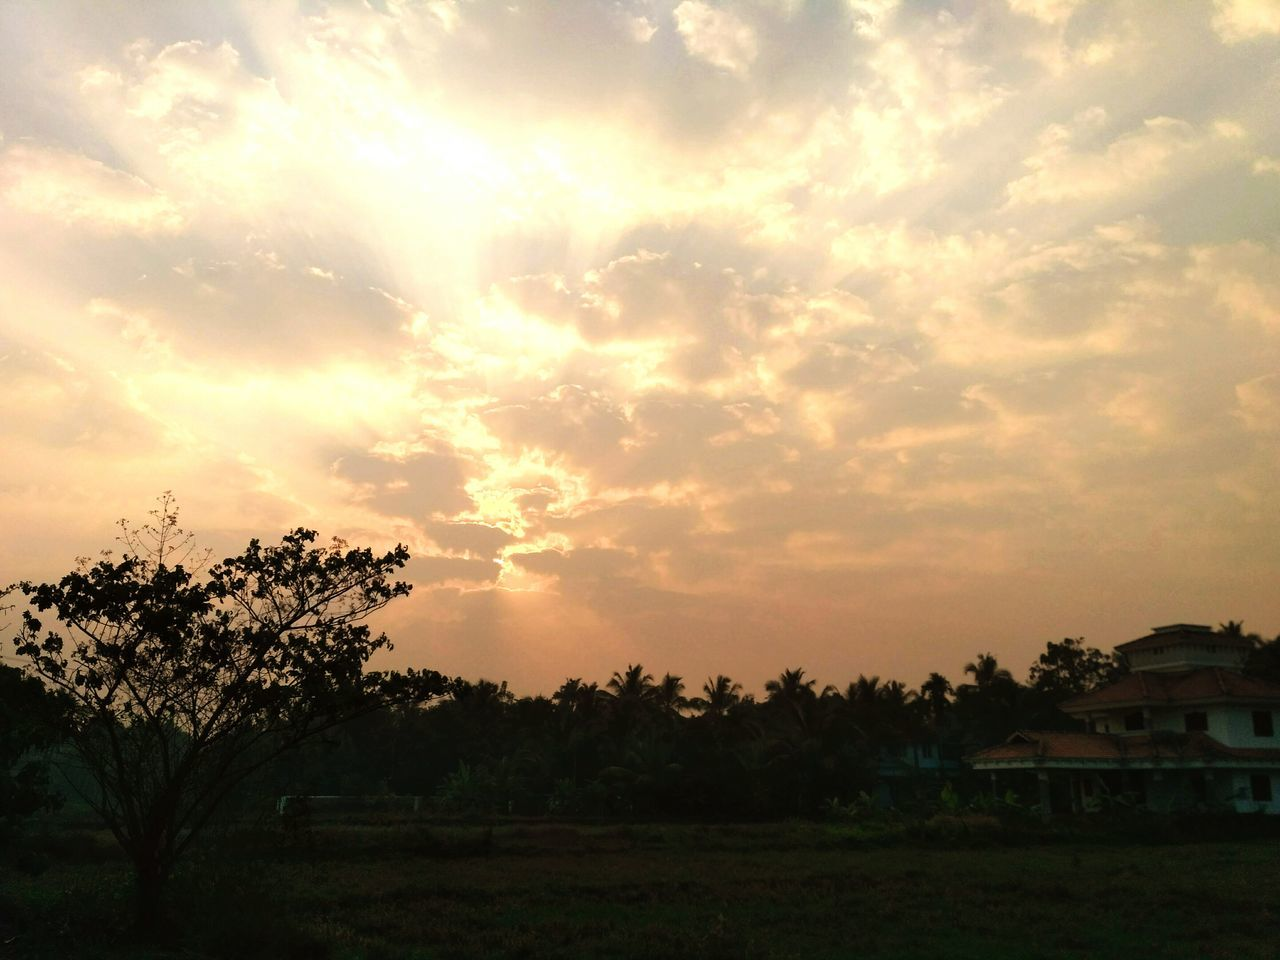 sunset, tree, beauty in nature, nature, sky, scenics, tranquility, no people, tranquil scene, outdoors, field, growth, landscape, day